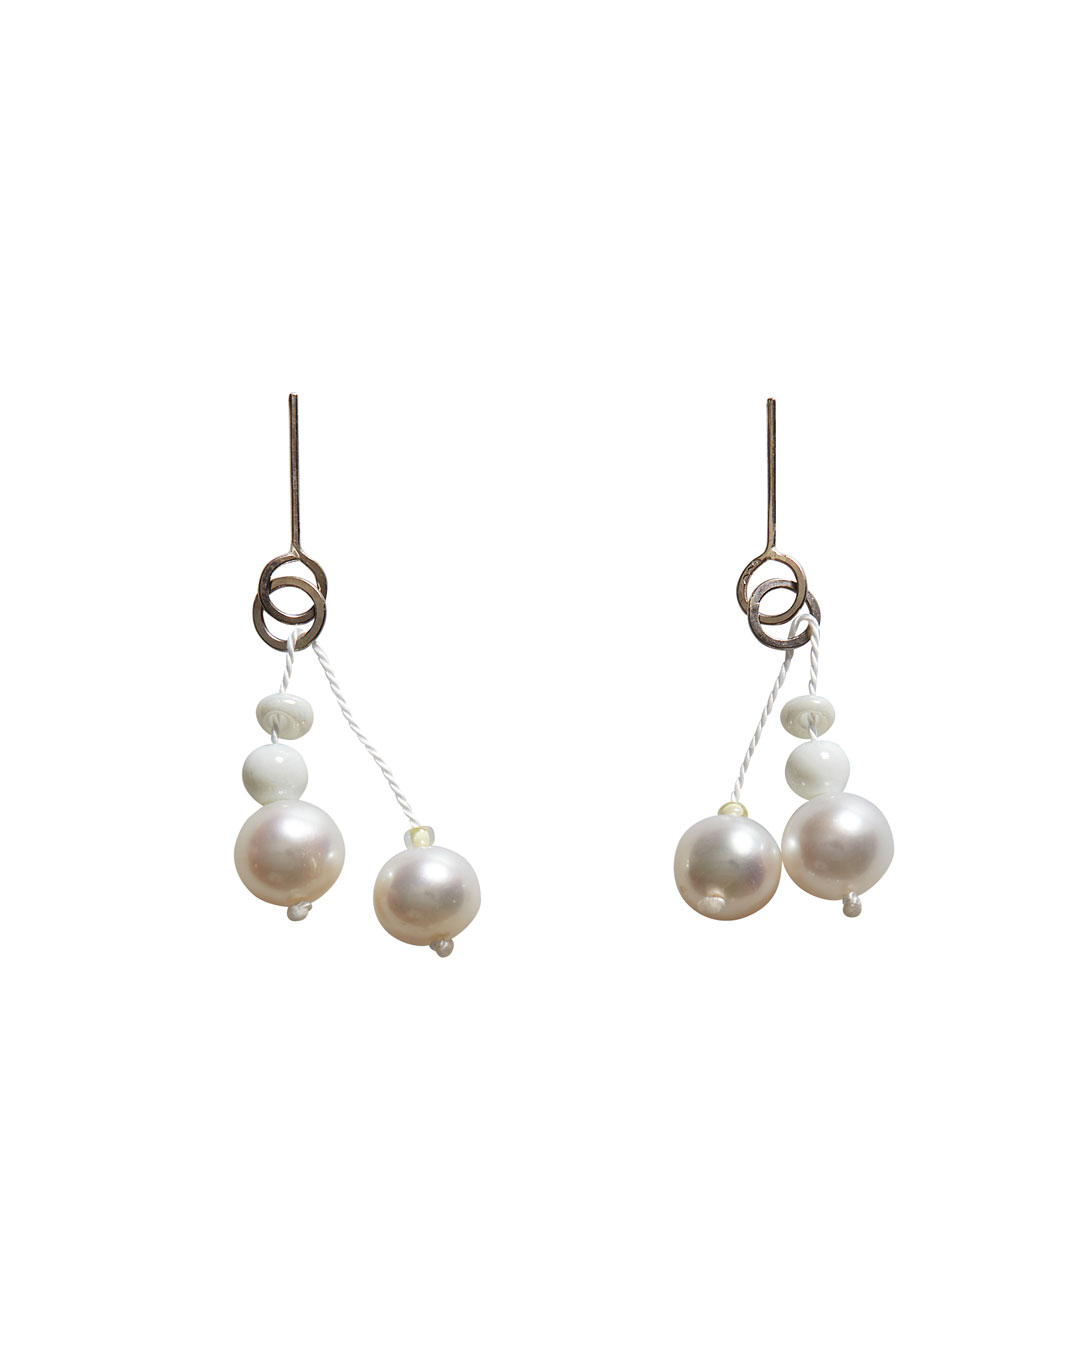 Annelies Planteijdt, Mooie stad - Witte water (Beautiful City - White Water), 2020, earrings; freshwater pearls, porcelain, Japanese glass beads, white gold, yarn, silver, 25 mm, €275